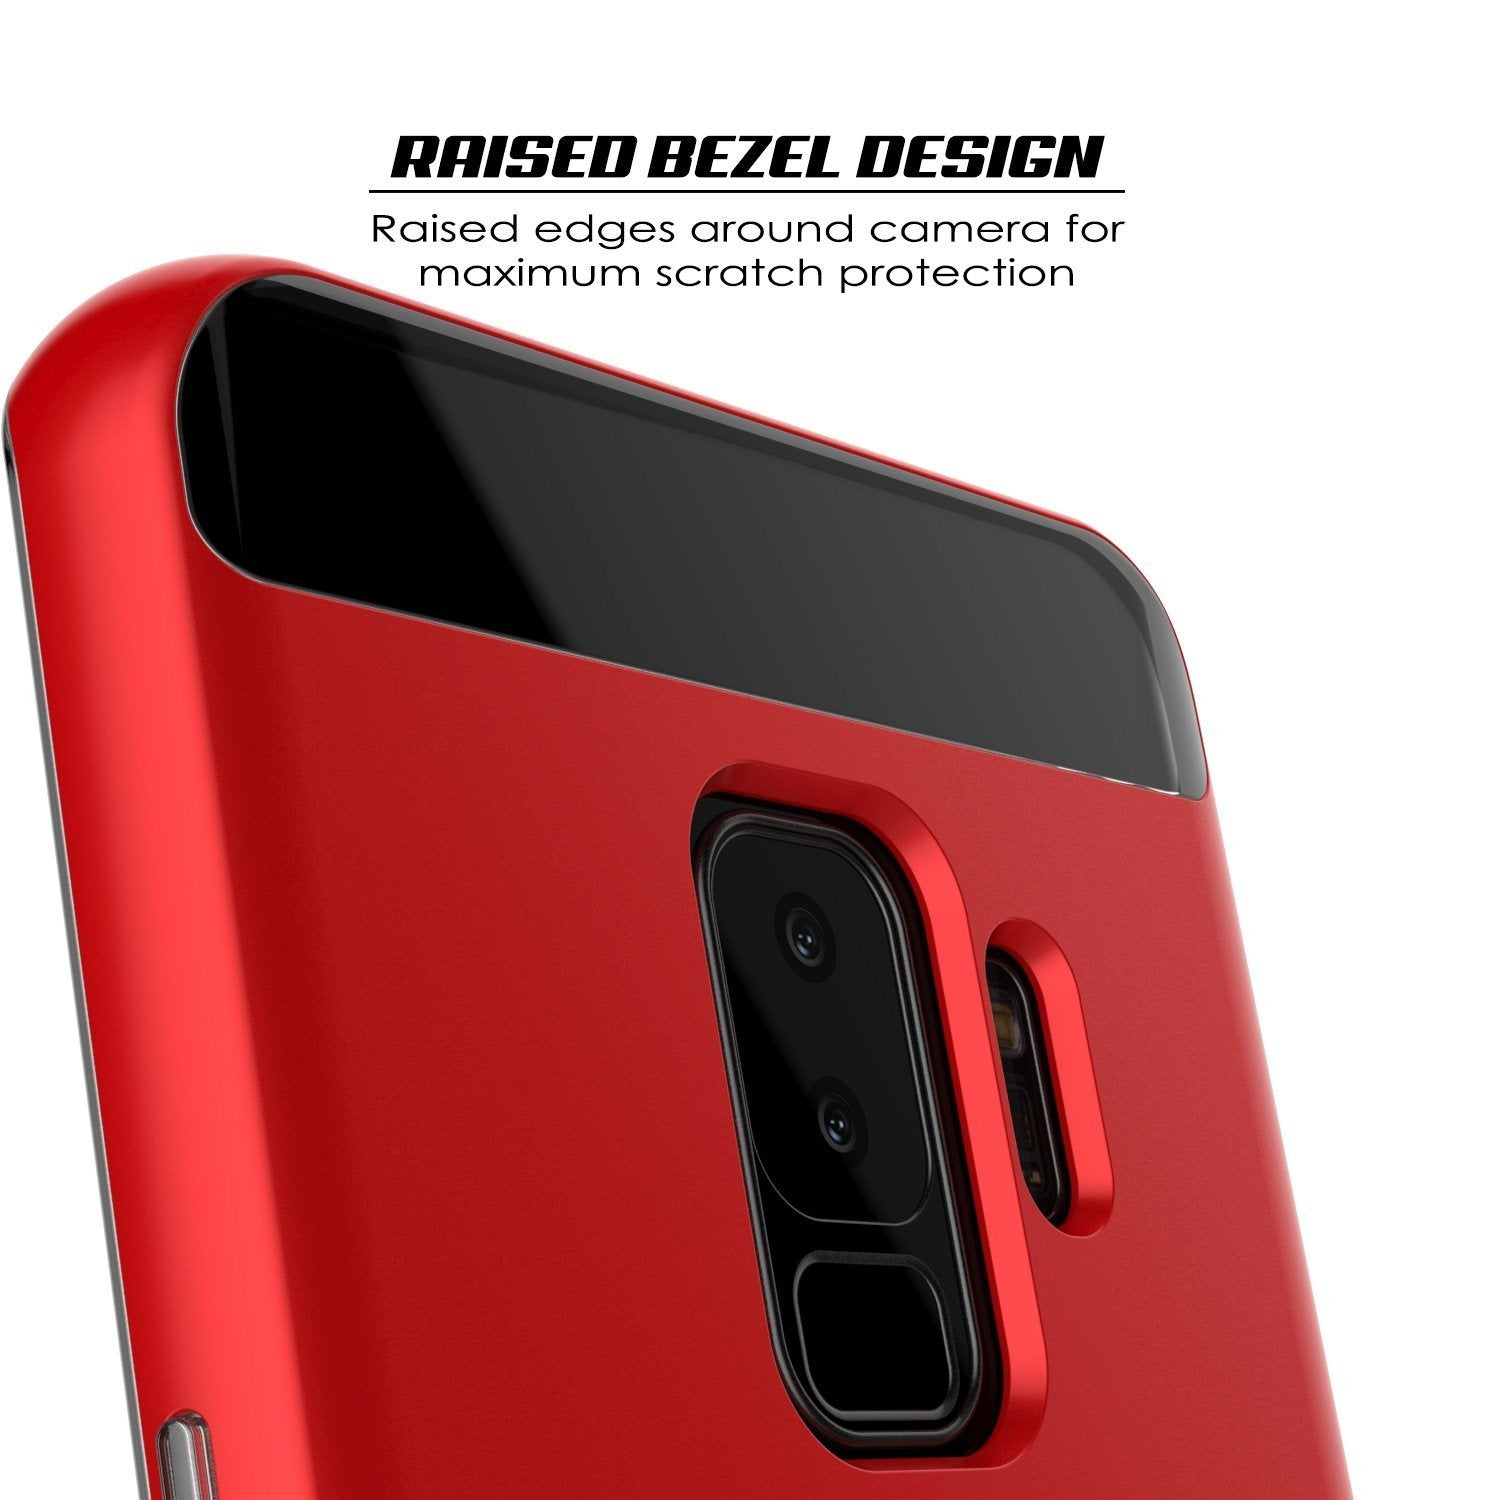 Galaxy S9+ Plus Case, PUNKcase [LUCID 3.0 Series] [Slim Fit] [Clear Back] Armor Cover w/ Integrated Kickstand, Anti-Shock System & PUNKSHIELD Screen Protector for Samsung Galaxy S9+ Plus [Red]